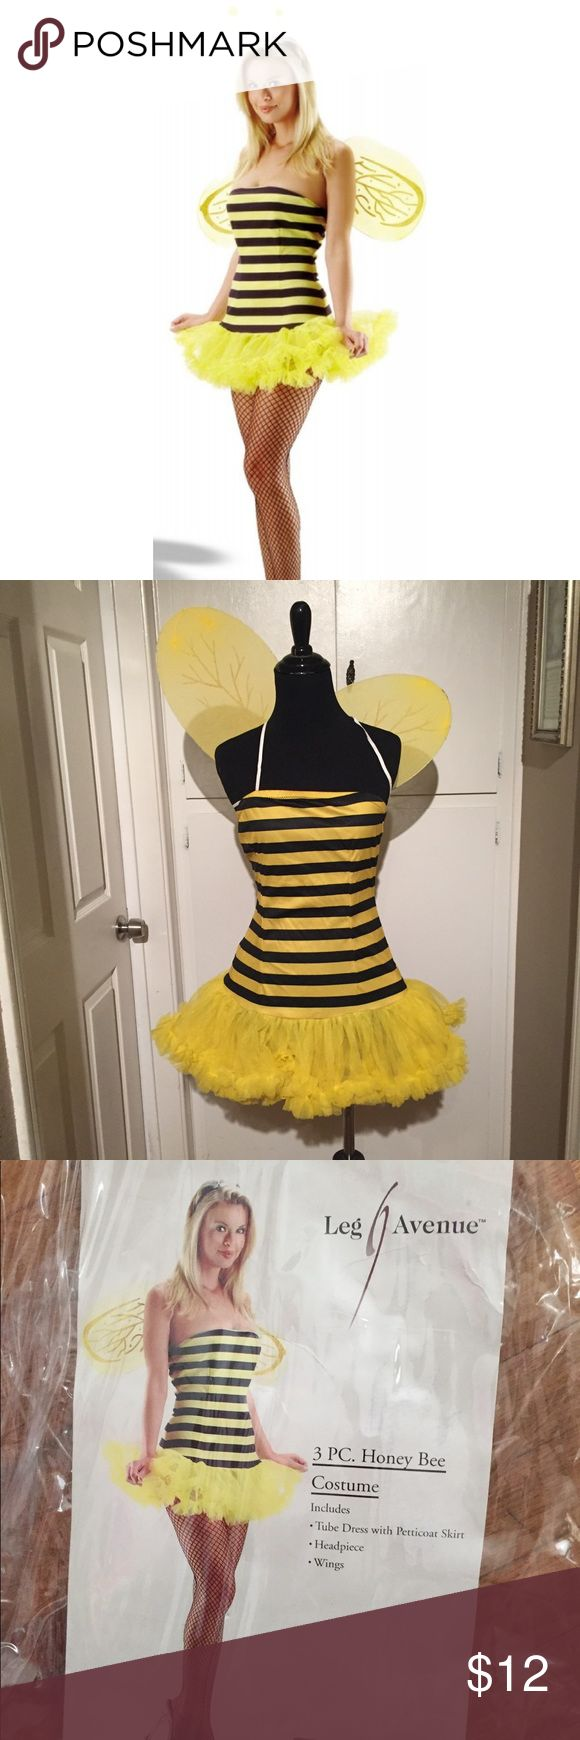 Halloween Leg Avenue Bee Costume In bag. Contains all 3 pieces; headband, dress, and wings. Size small/medium. Like new. I am selling on. ♏️ercari for $9 with $4 shipping leg avenue Dresses Mini